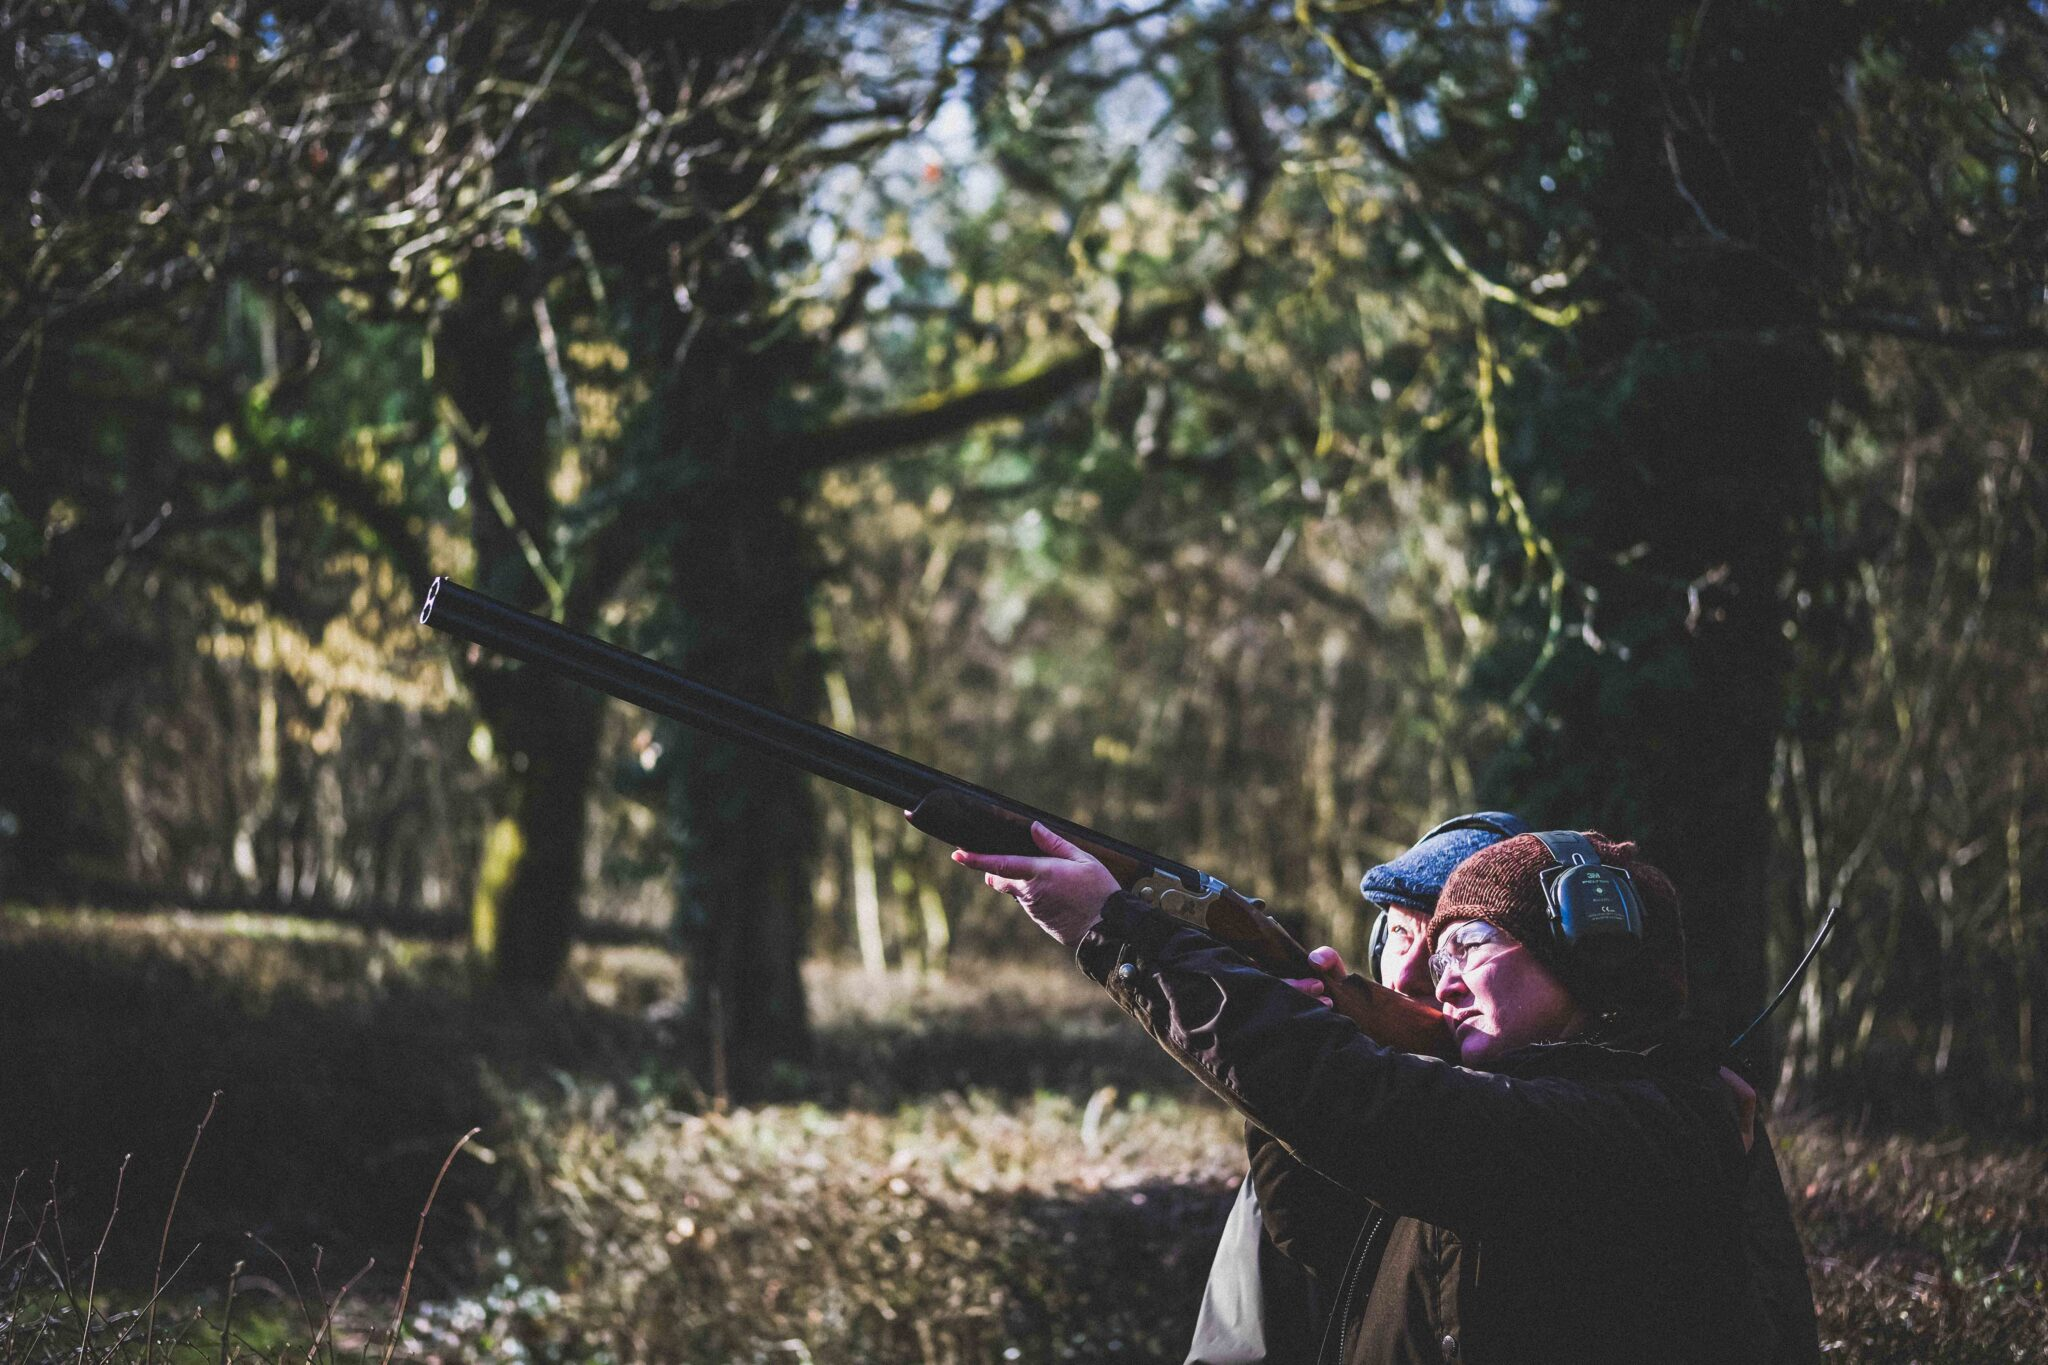 Clay shooting lessons at Lady's Wood Shooting School